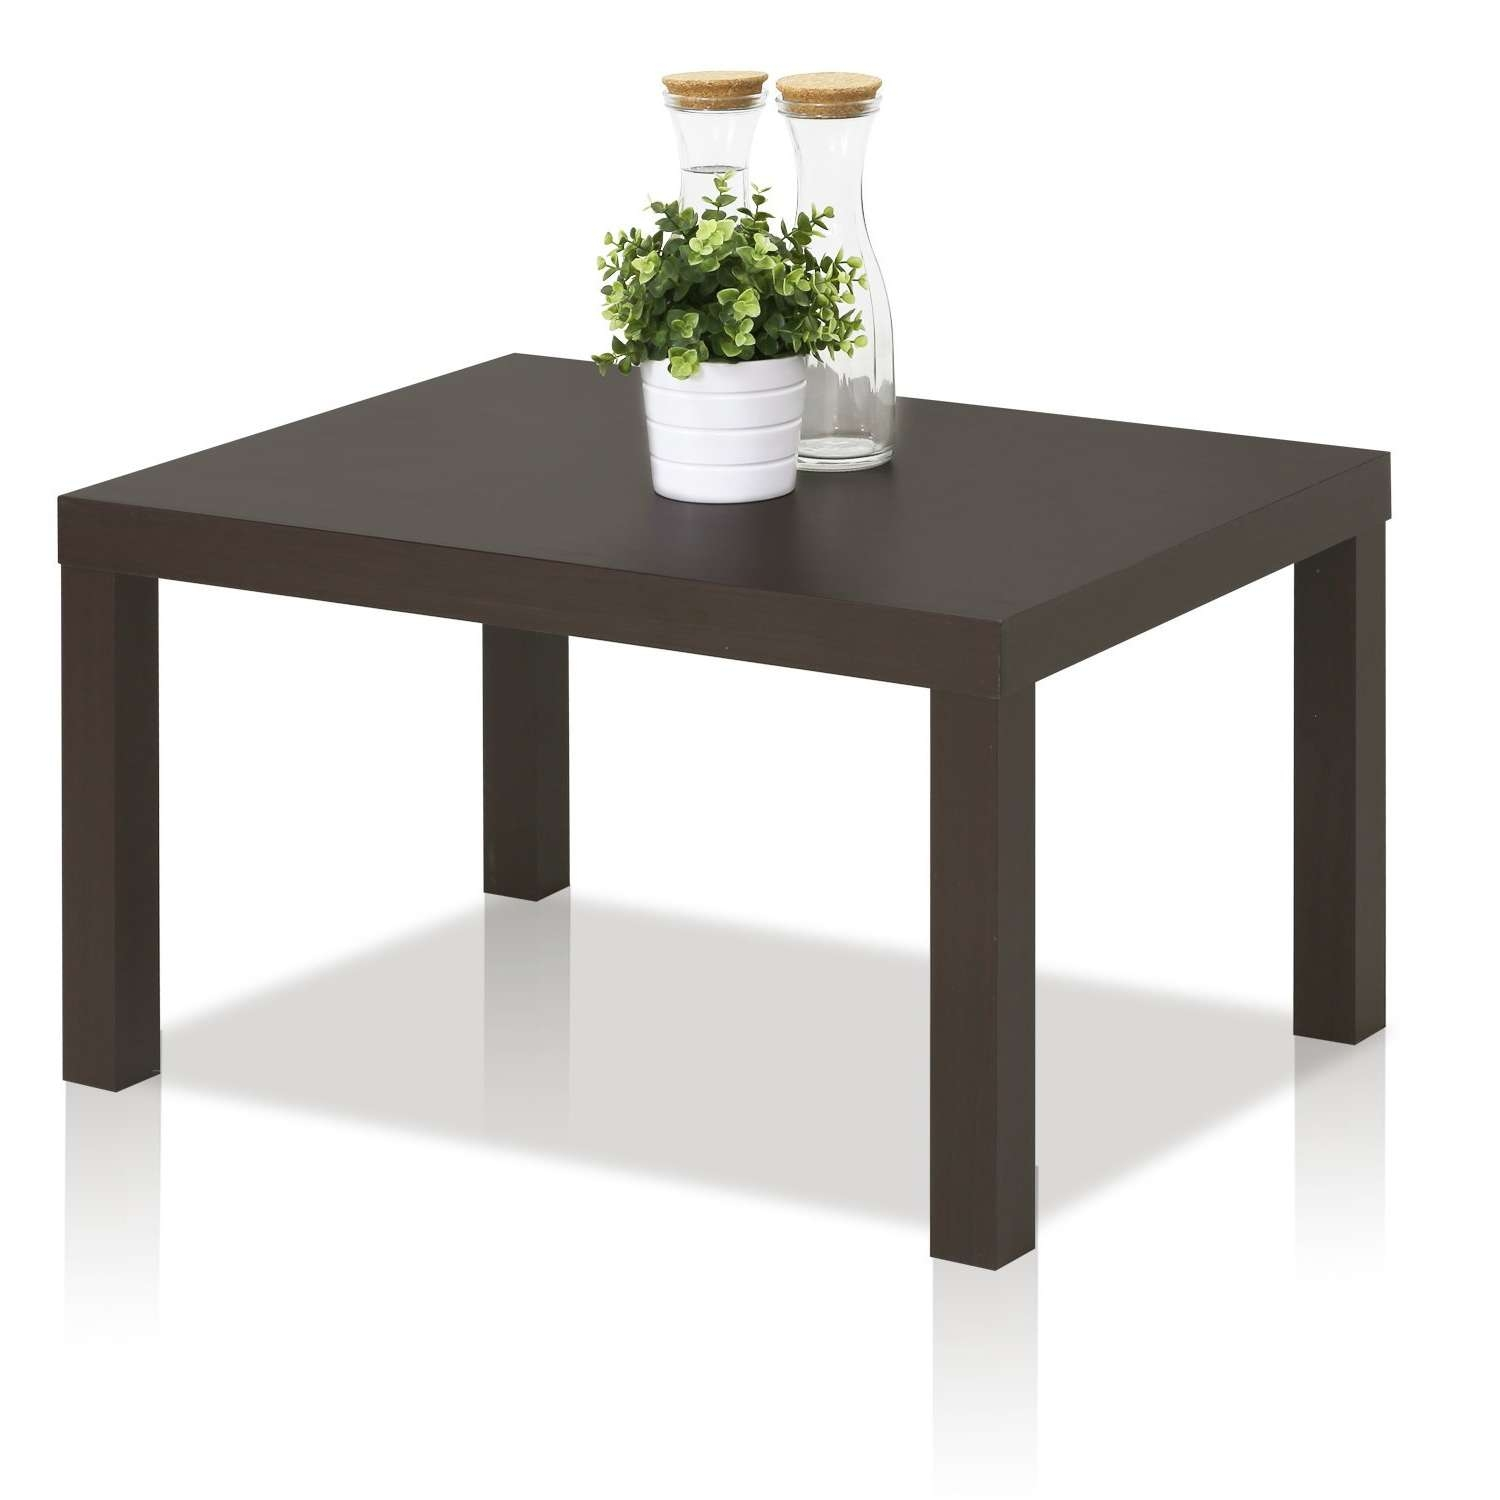 Cheap Coffee Tables Under $100 That Work For Every Style Intended For Latest Cheap Coffee Tables (View 2 of 20)